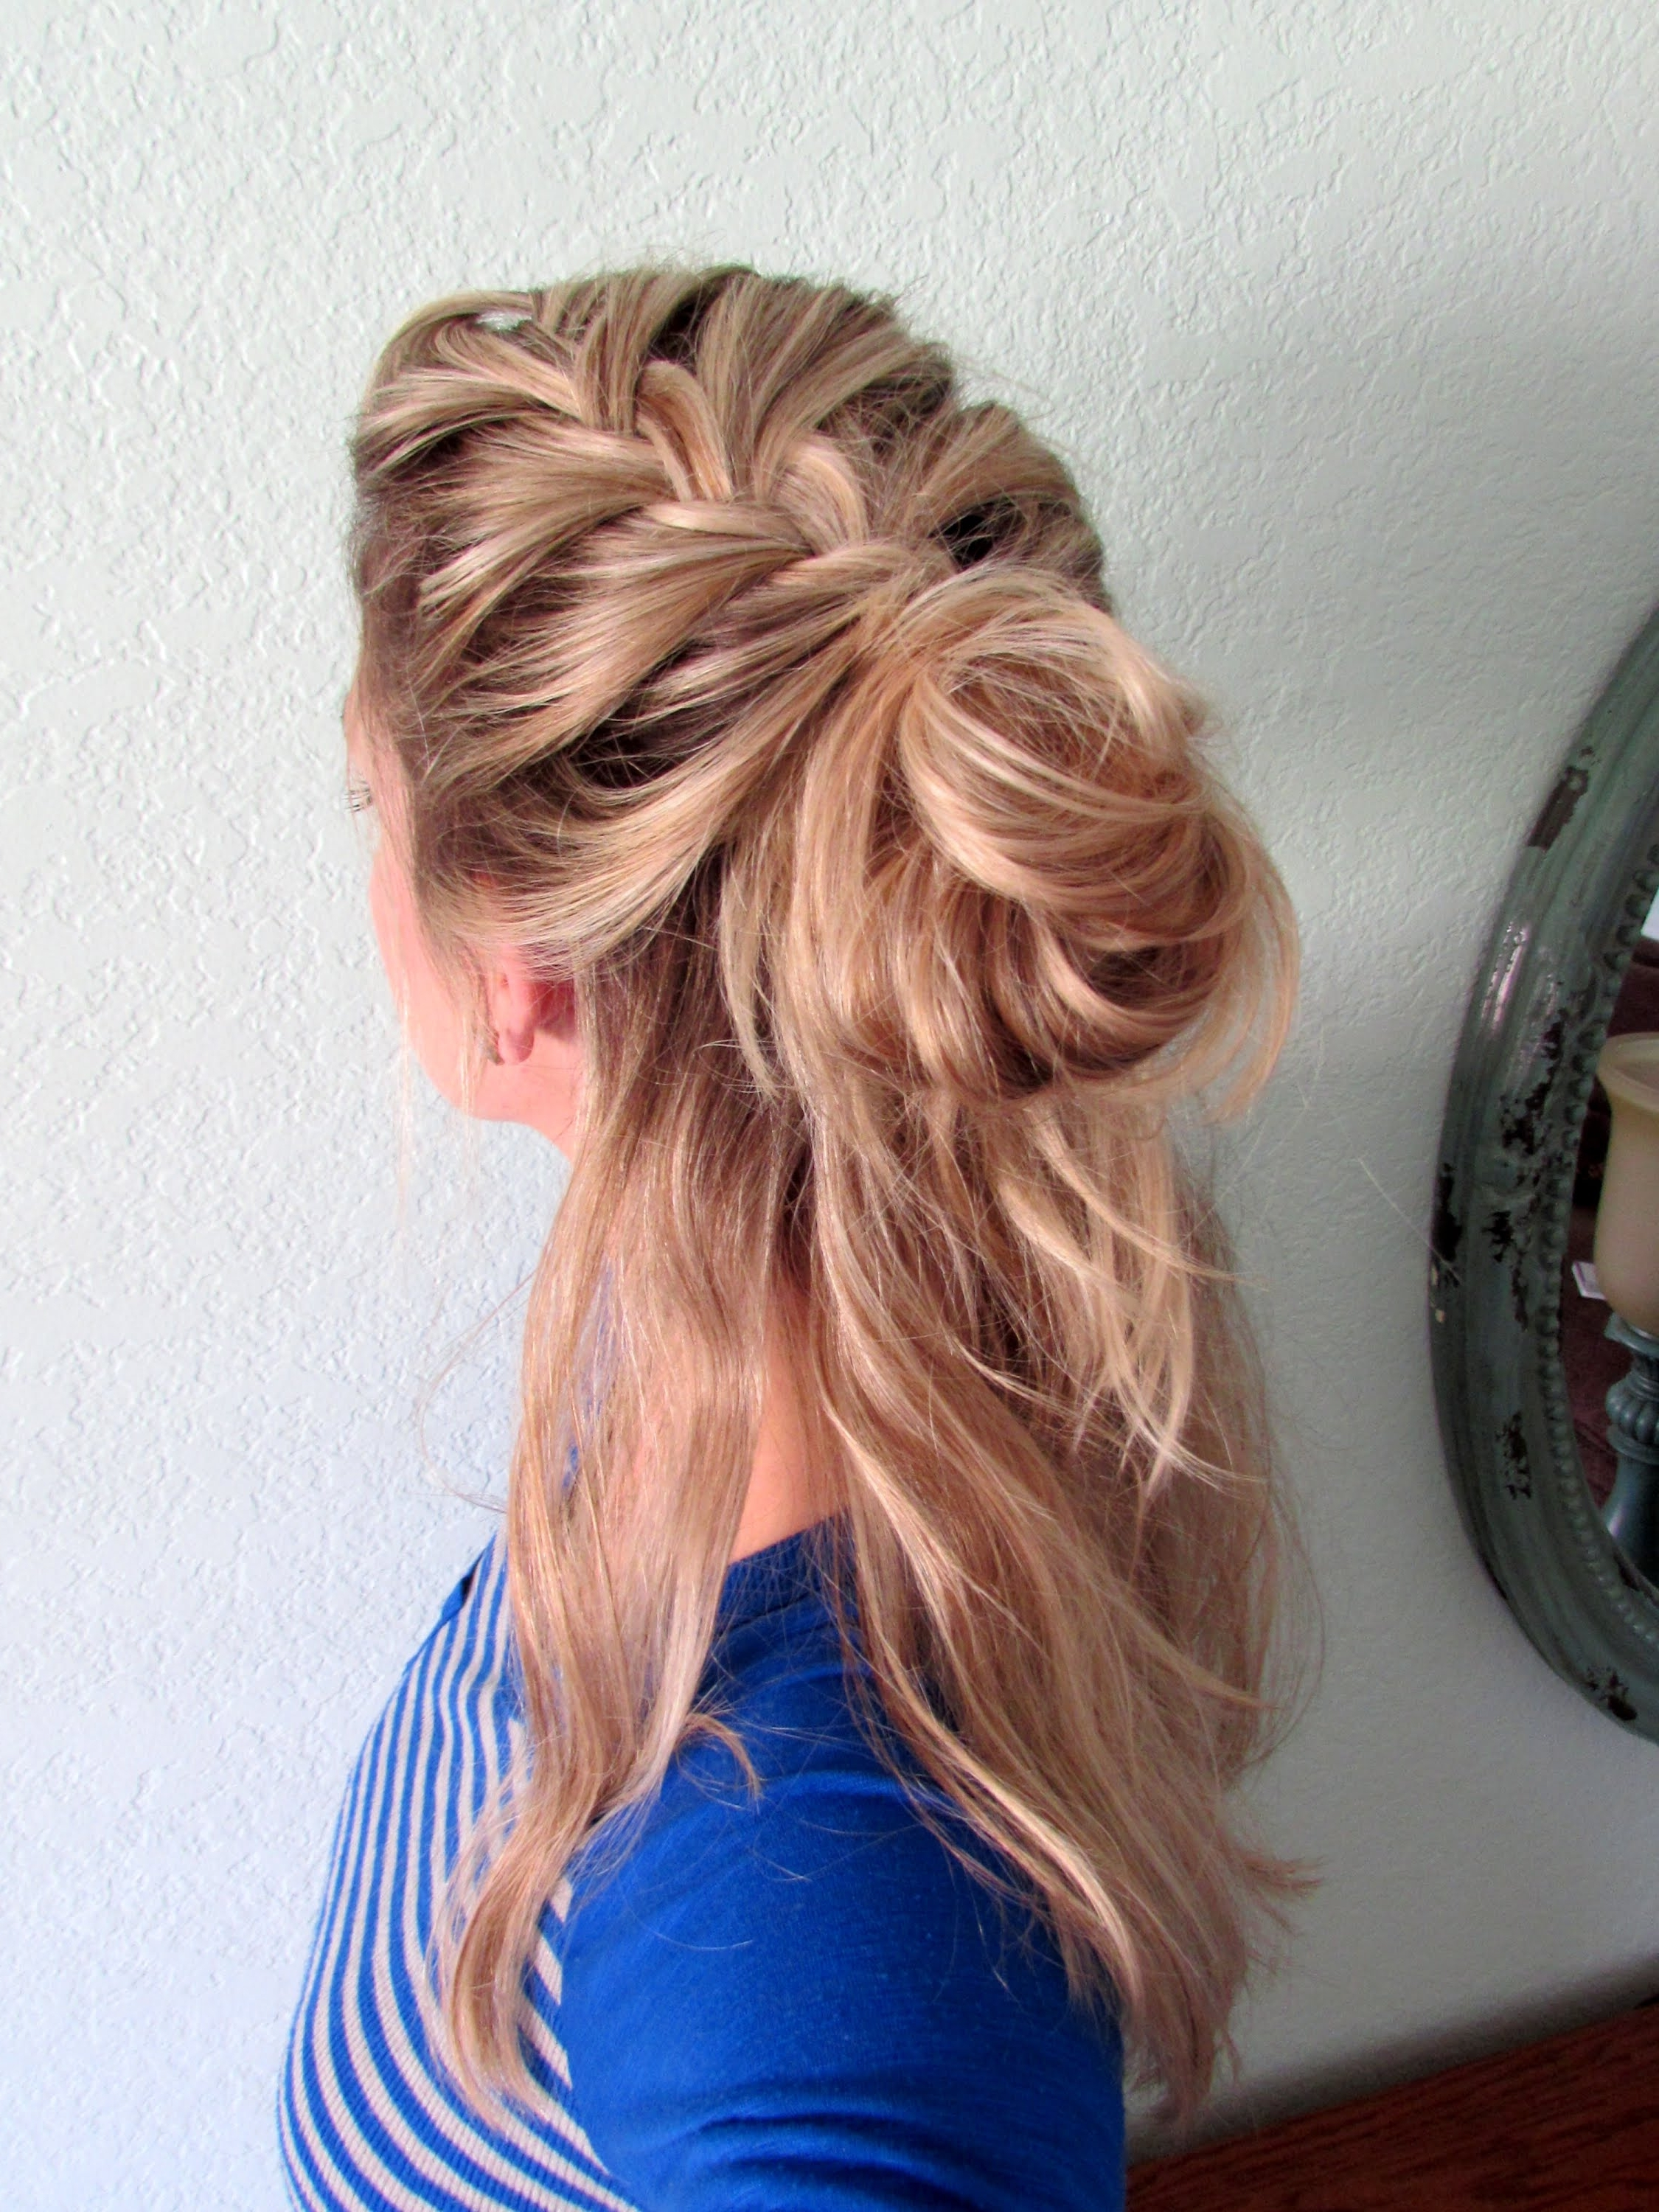 Collection Of Solutions French Braid Bun Hairstyles Tutorial Cute With Regard To 2018 Upside Down Braids Into Messy Bun (View 4 of 15)